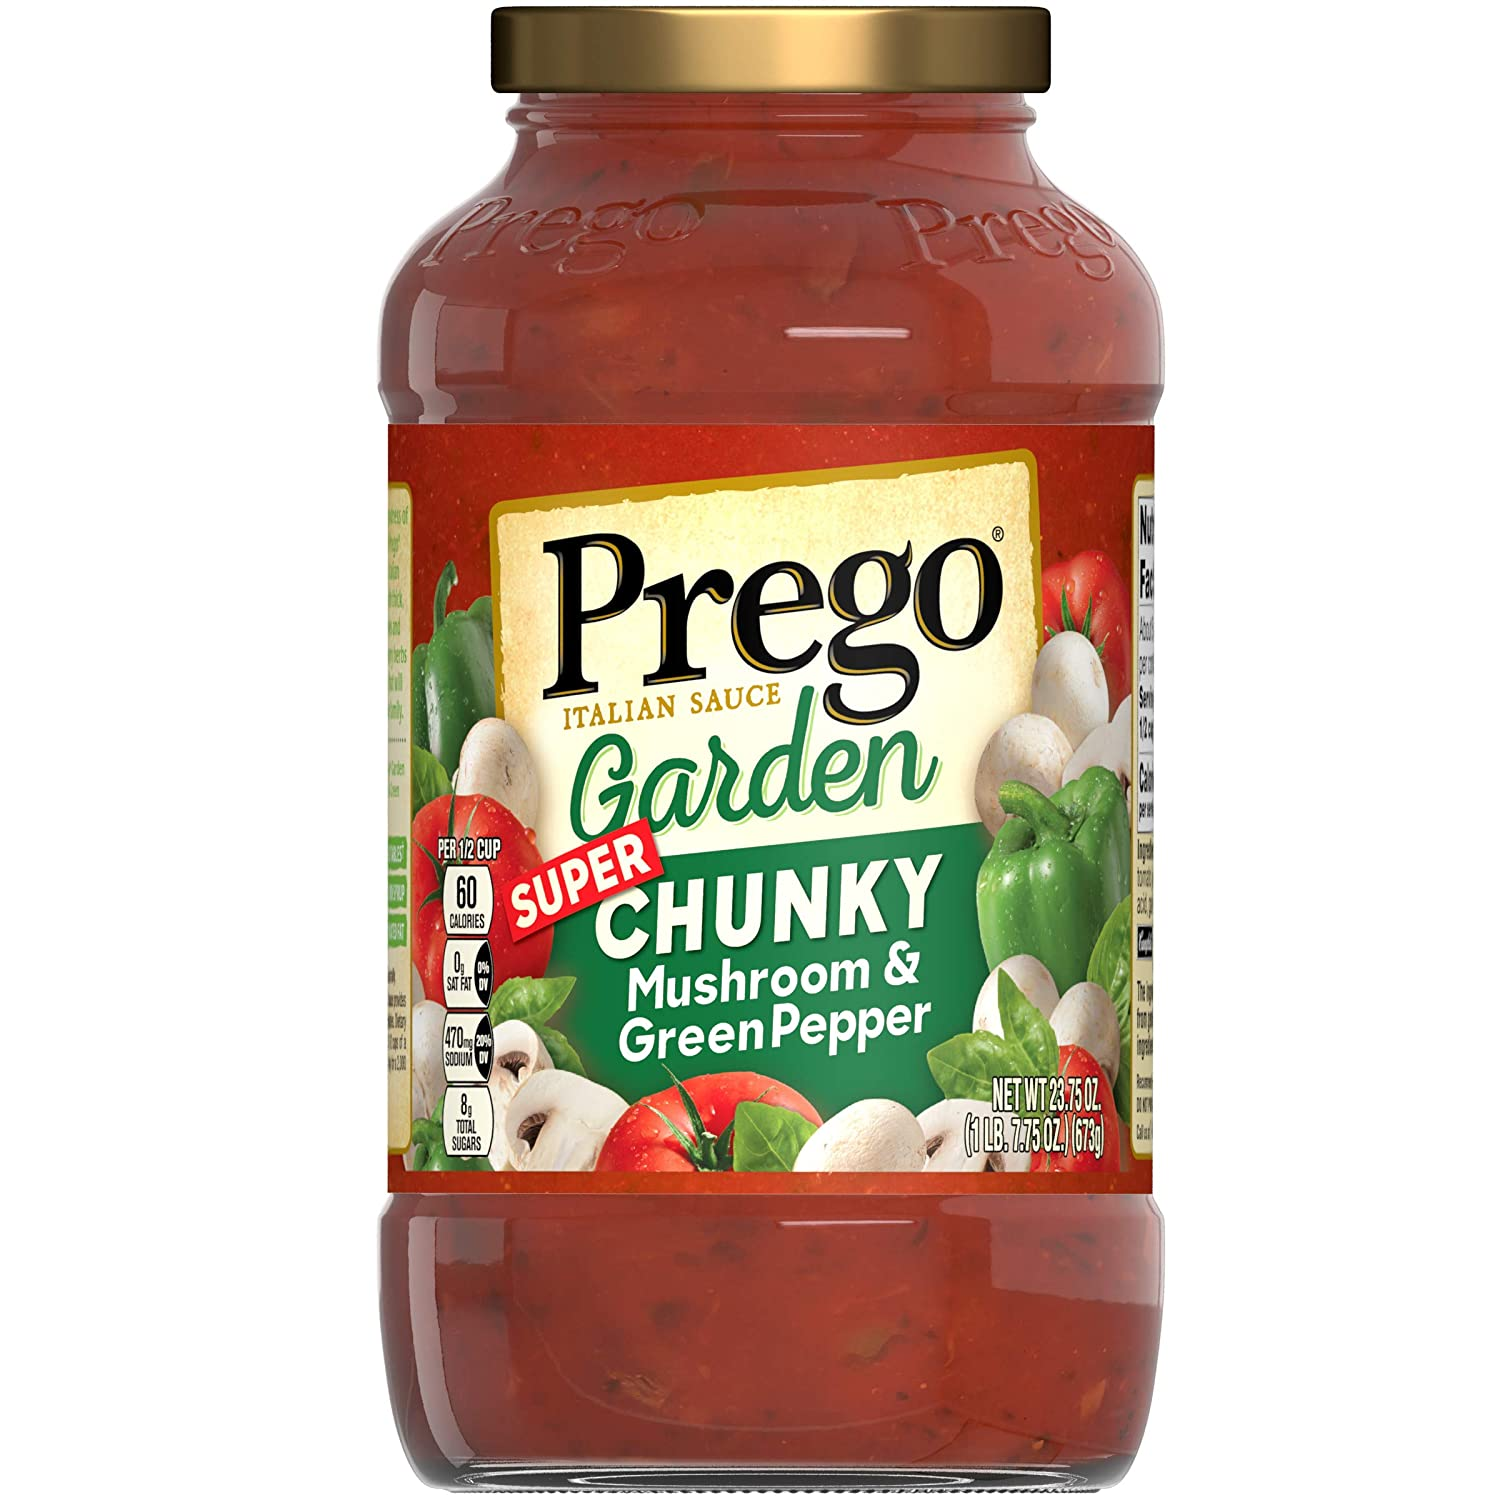 Prego Garden Harvest Mushroom & Green Pepper Italian Sauce, 23.75 Ounce Jar (Pack of 6)